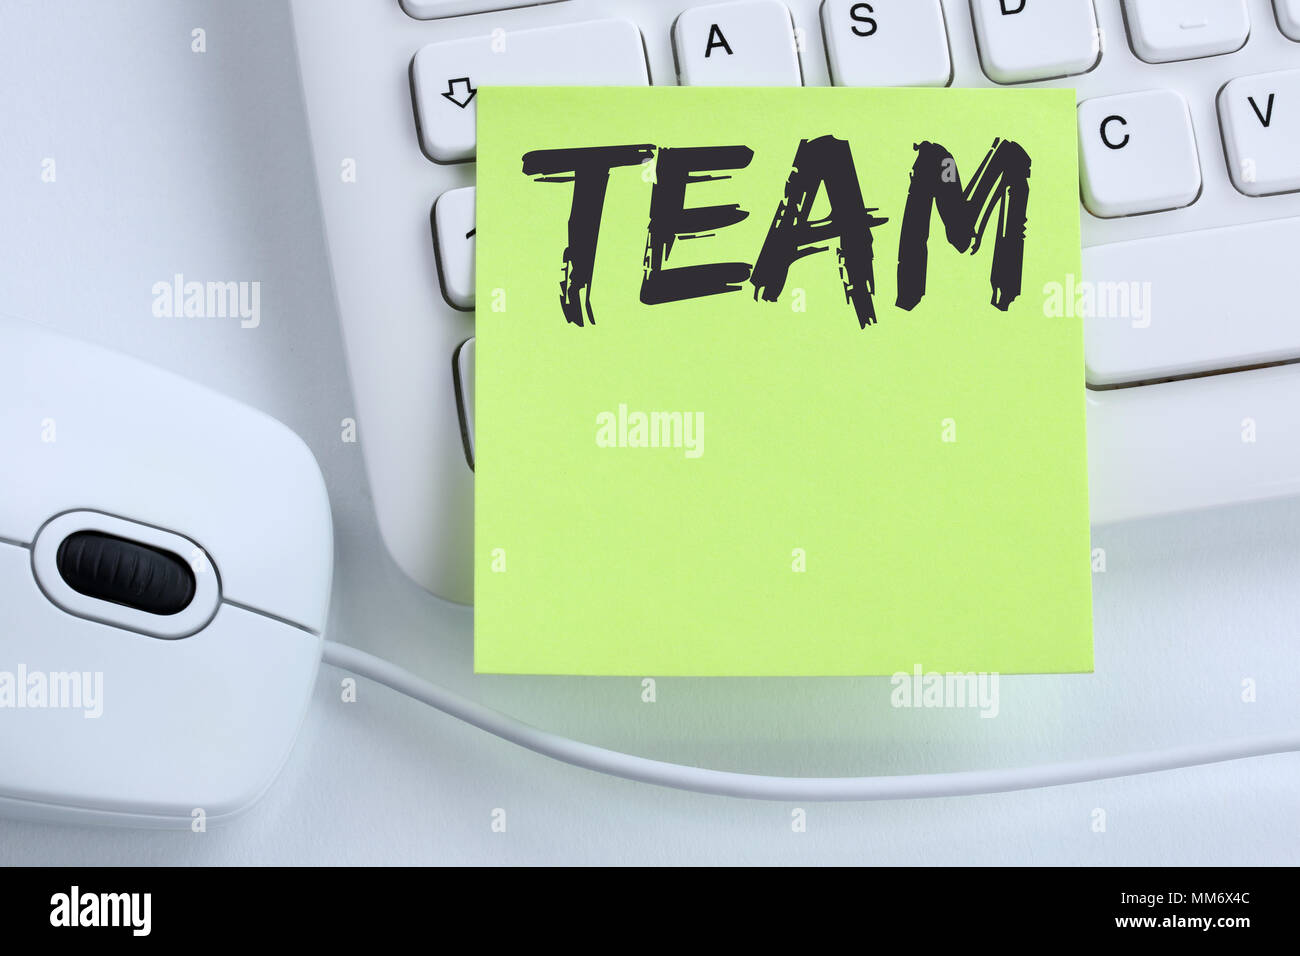 Team teamwork working together business concept office mouse computer keyboard - Stock Image